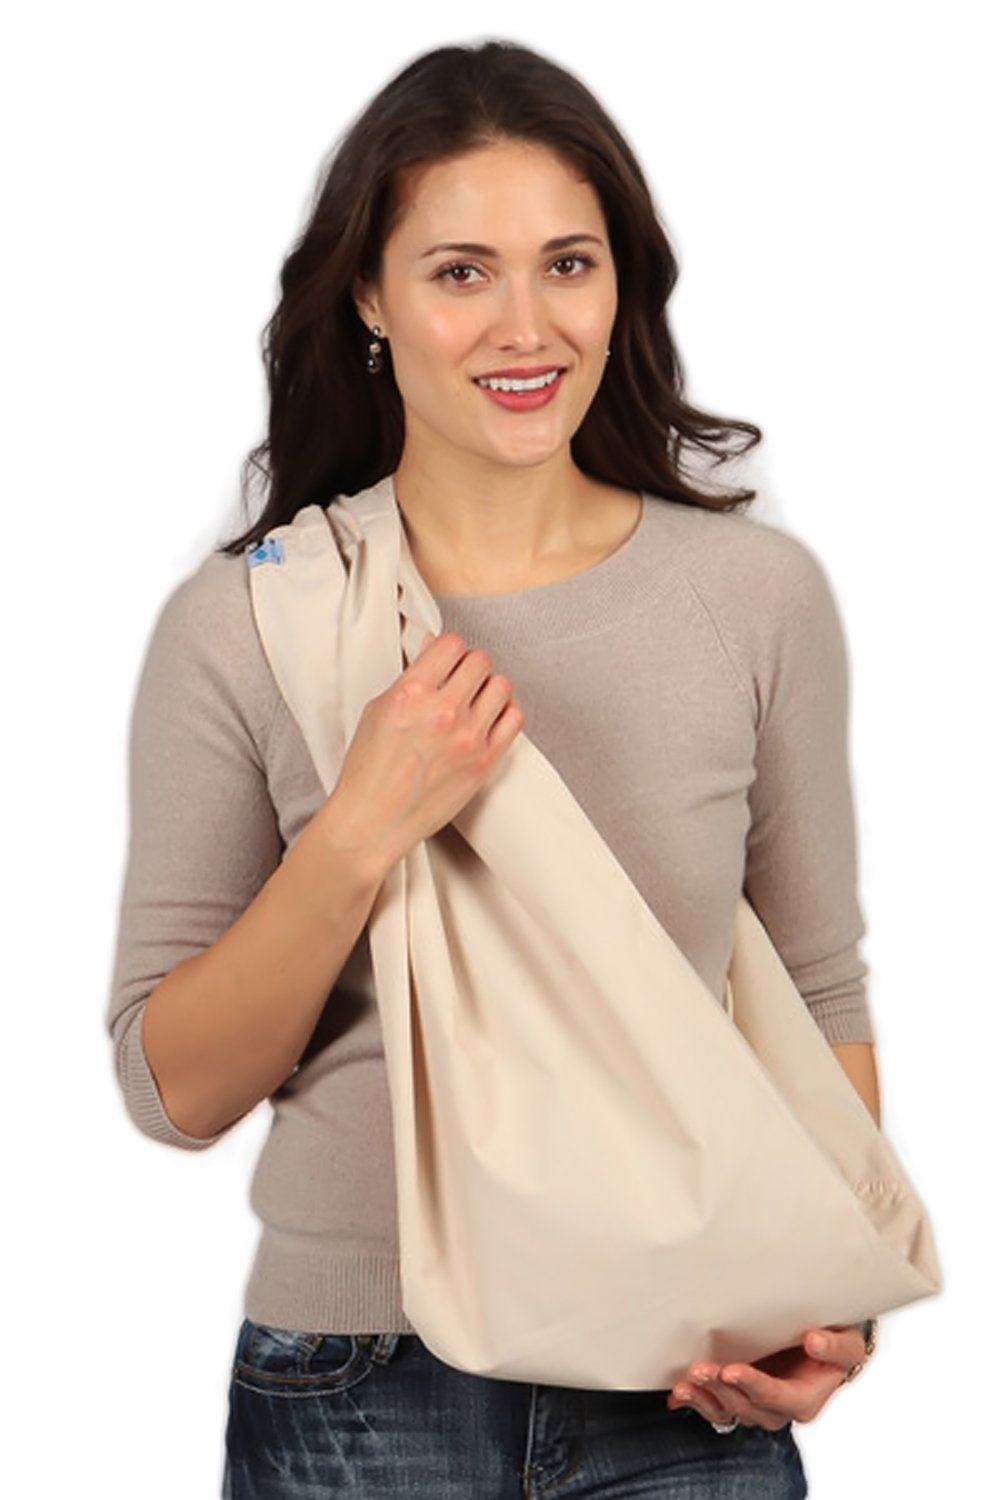 HugaMonkey Cotton Baby Sling Wrap Carrier for Newborn Babies, Infants and Toddlers Upto 3 Years - Stone, Extra Large